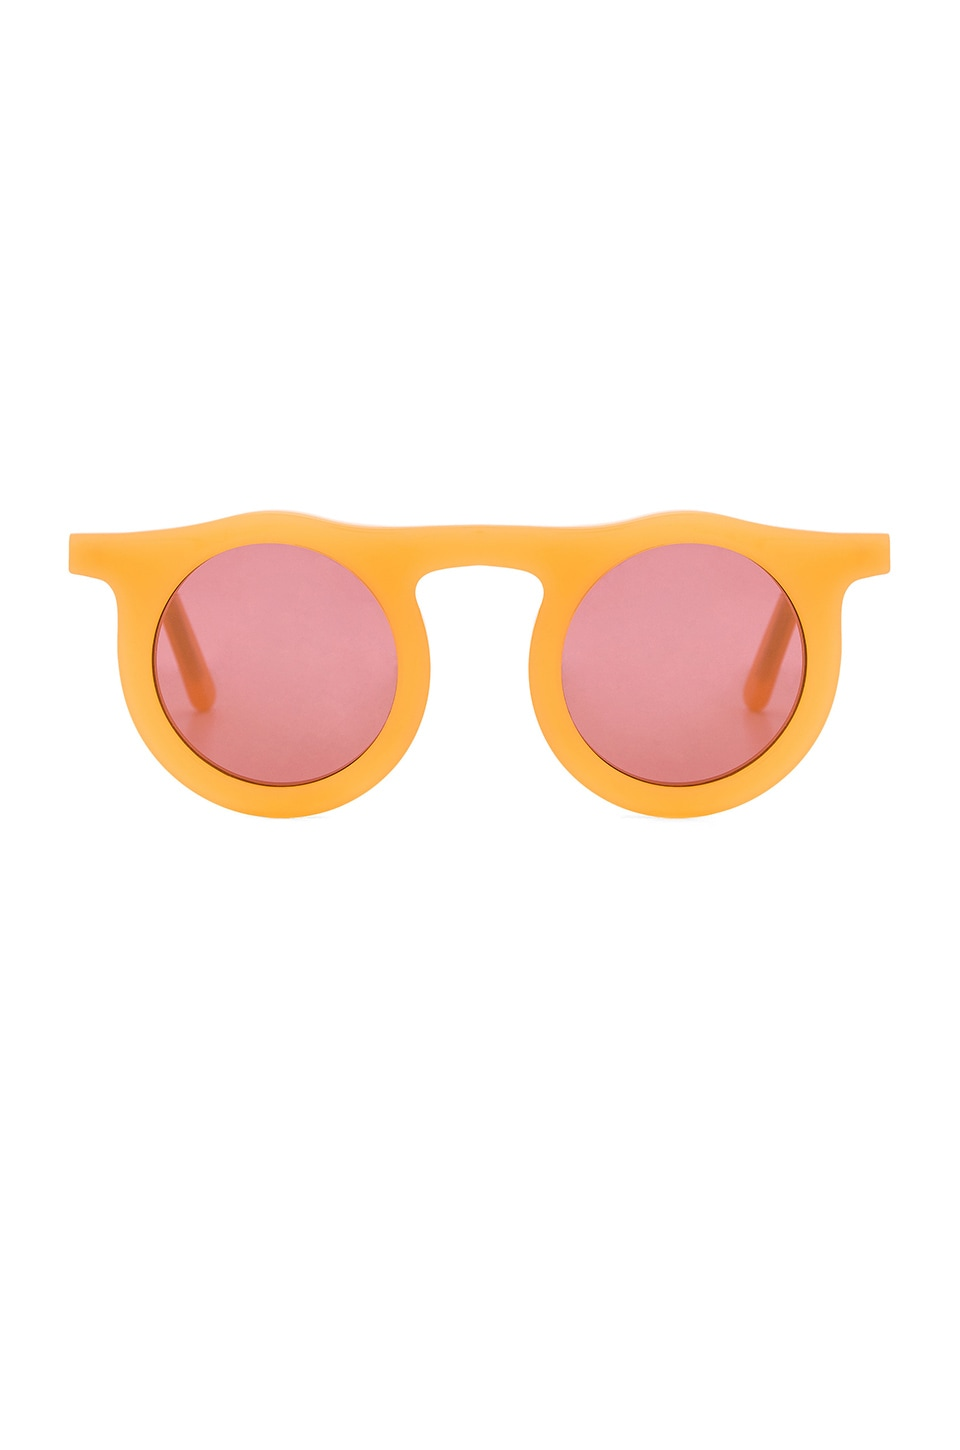 Carla Colour Lind Circles Sunglasses in Citric Acid with Nightshade Lenses